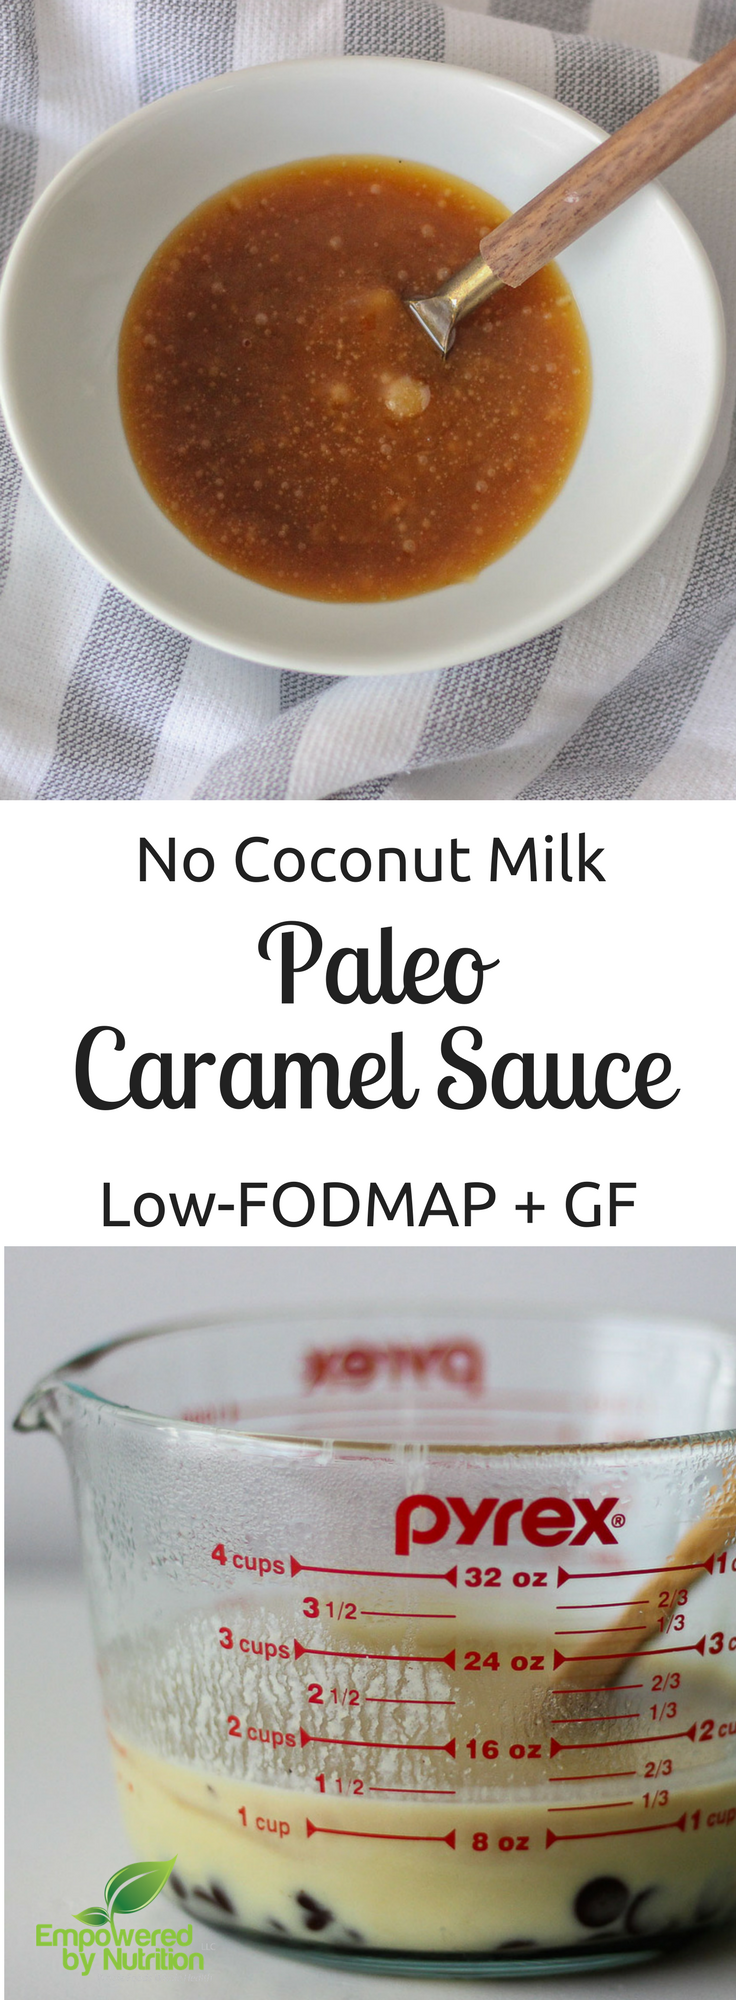 Caramel Sauce Paleo, Low-FODMAP and Gluten-free-Perfect for Valentine's Day